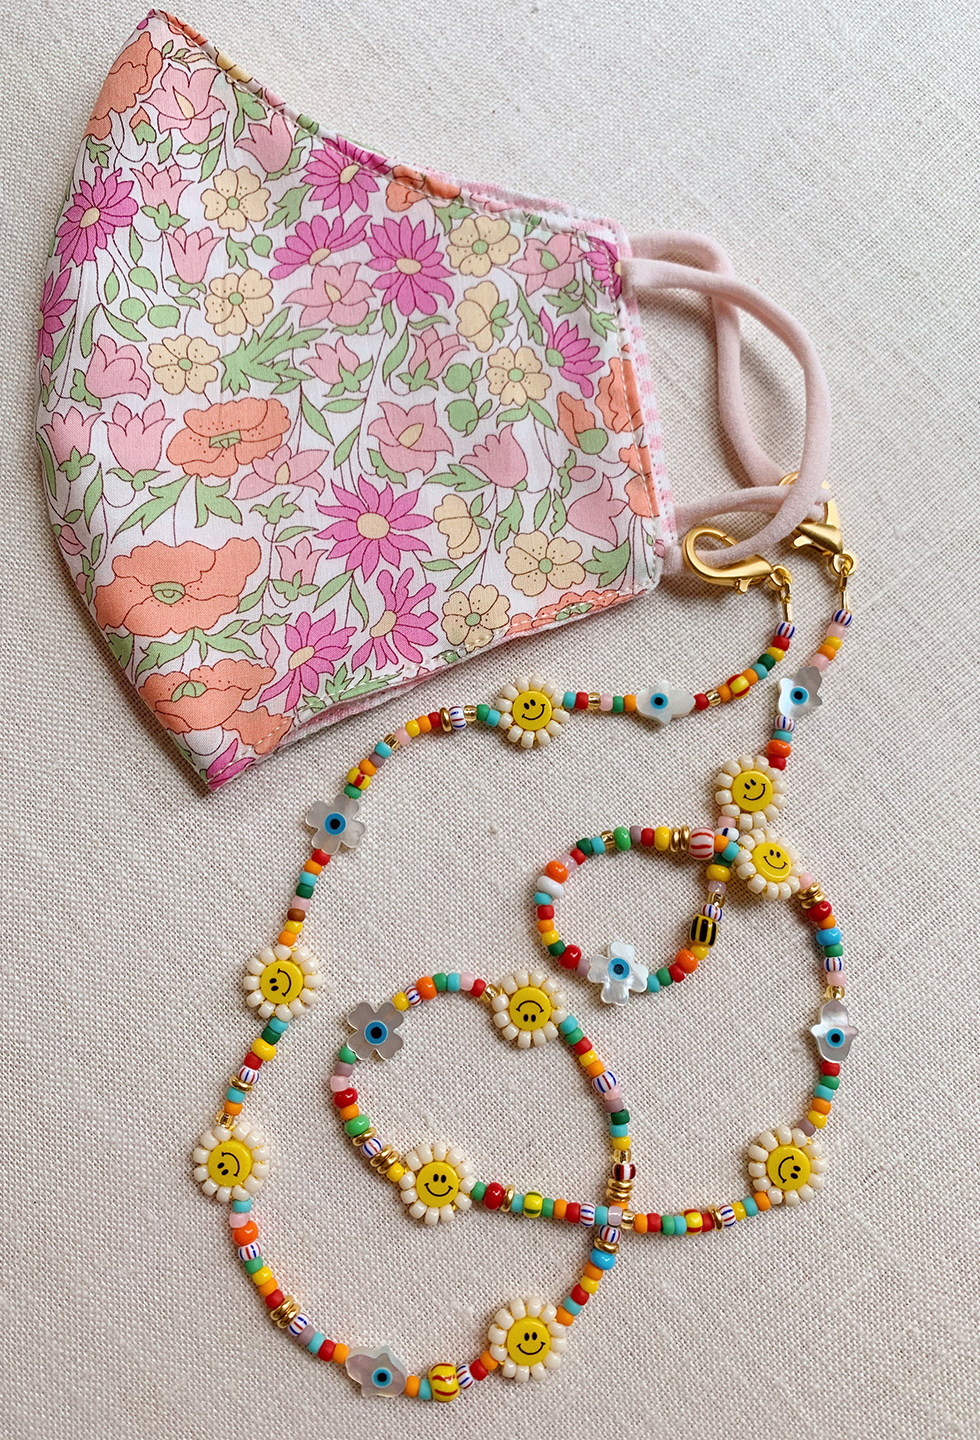 Image of a Beaded Mask Chain to hold your mask